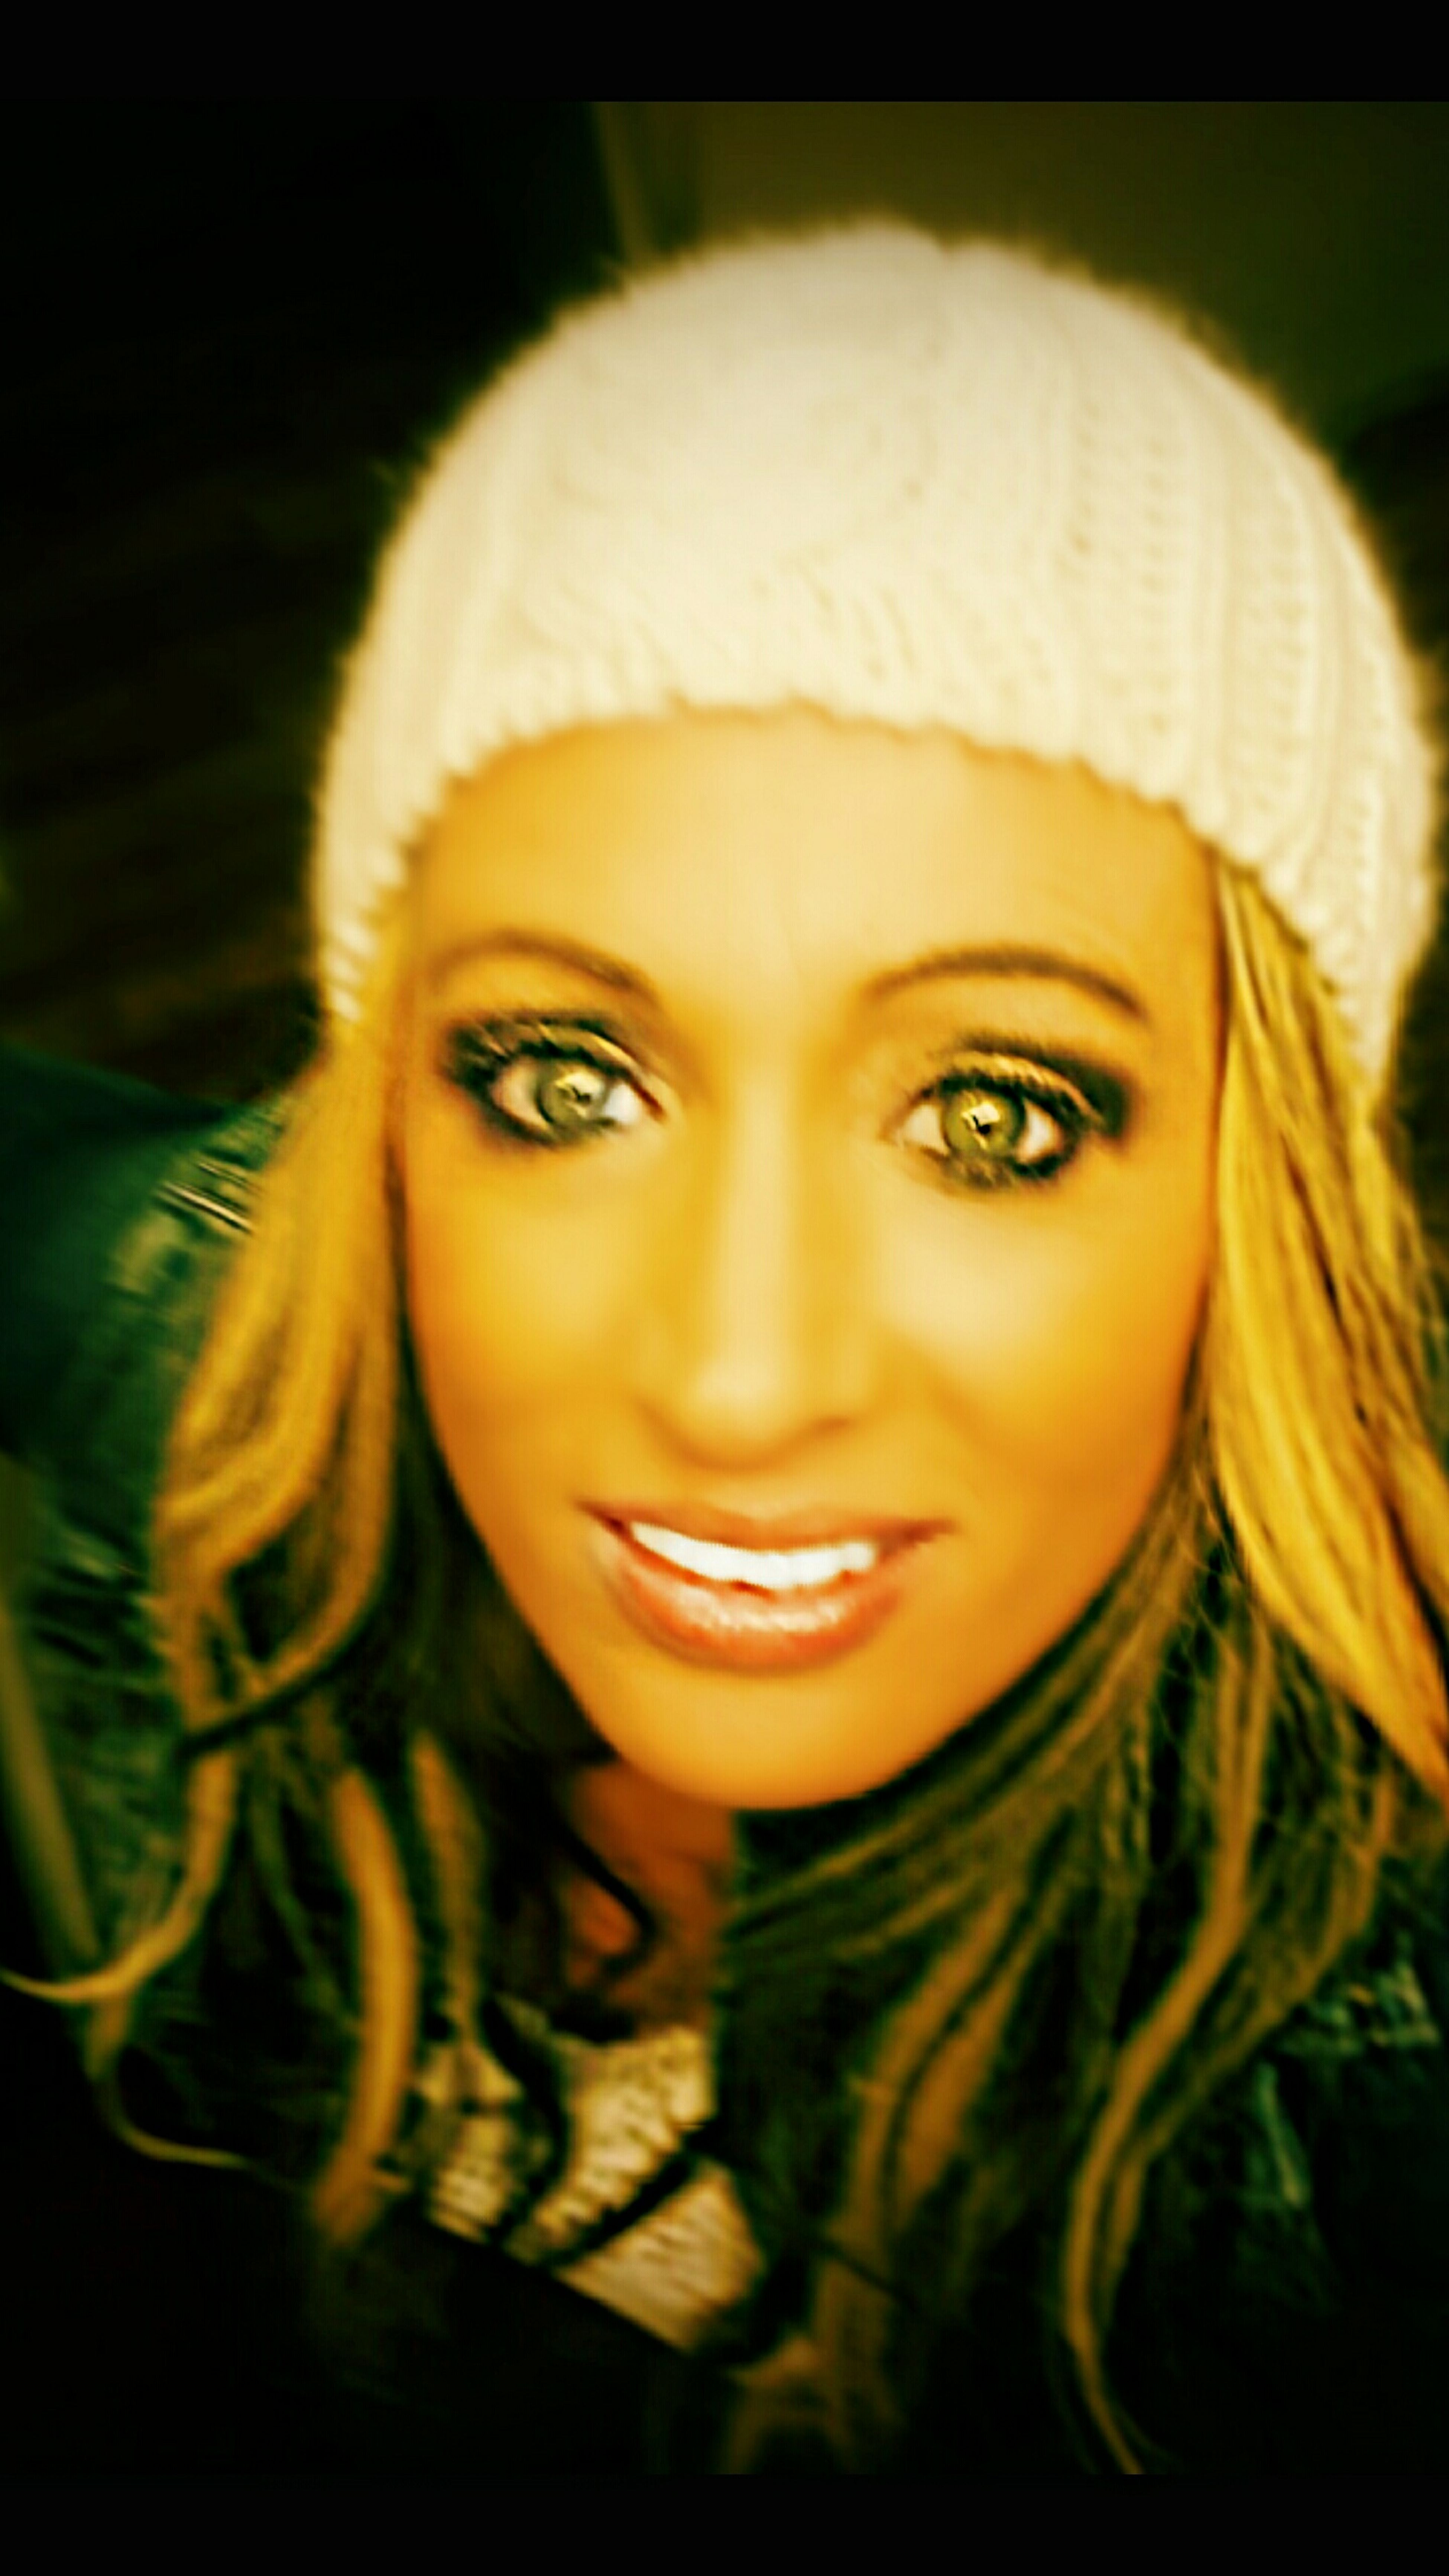 Hanging Out Cheese! Relaxing Dreamer Girl Green Eyes My Lips ♥